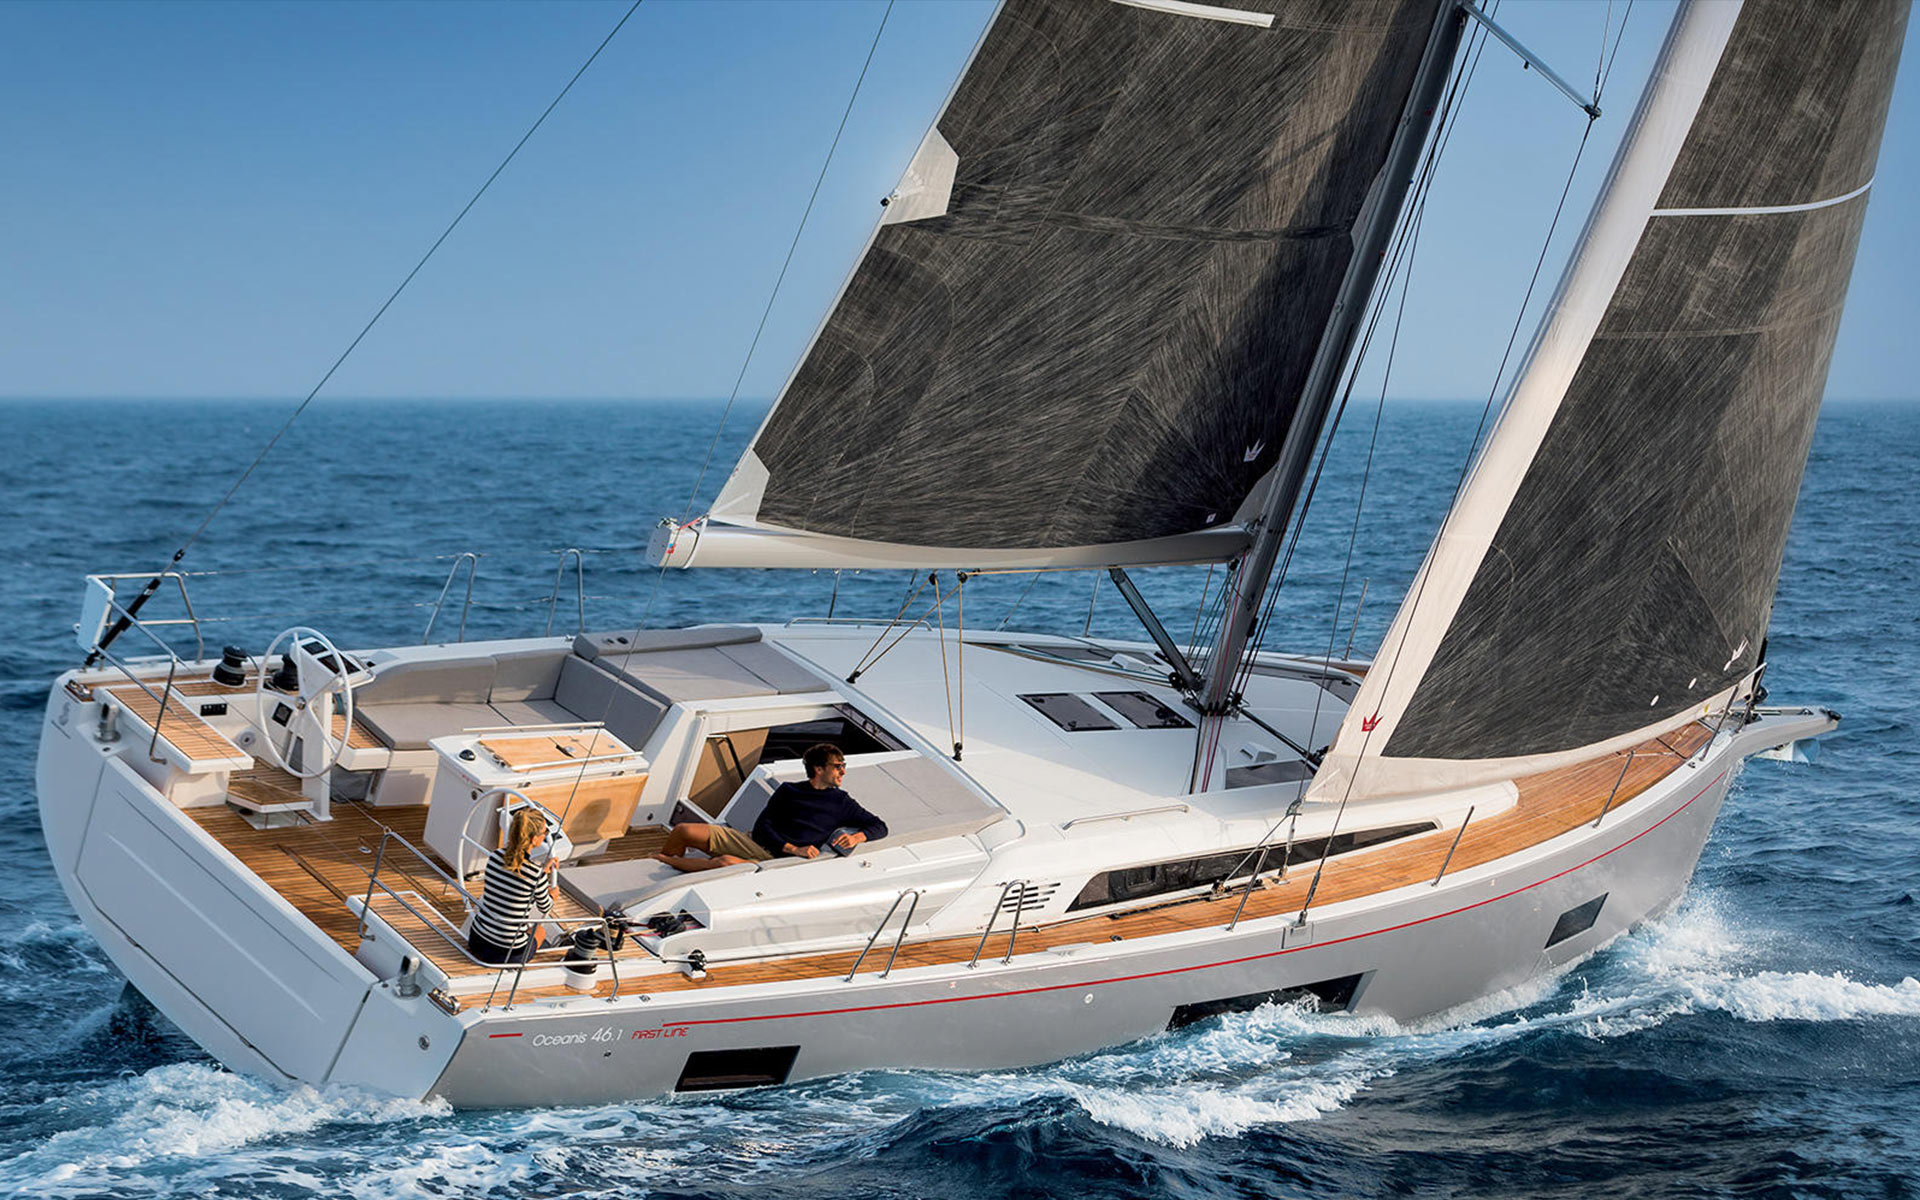 Infinity-sailing-yact-charter-a-yacht-gallery-01.jpg